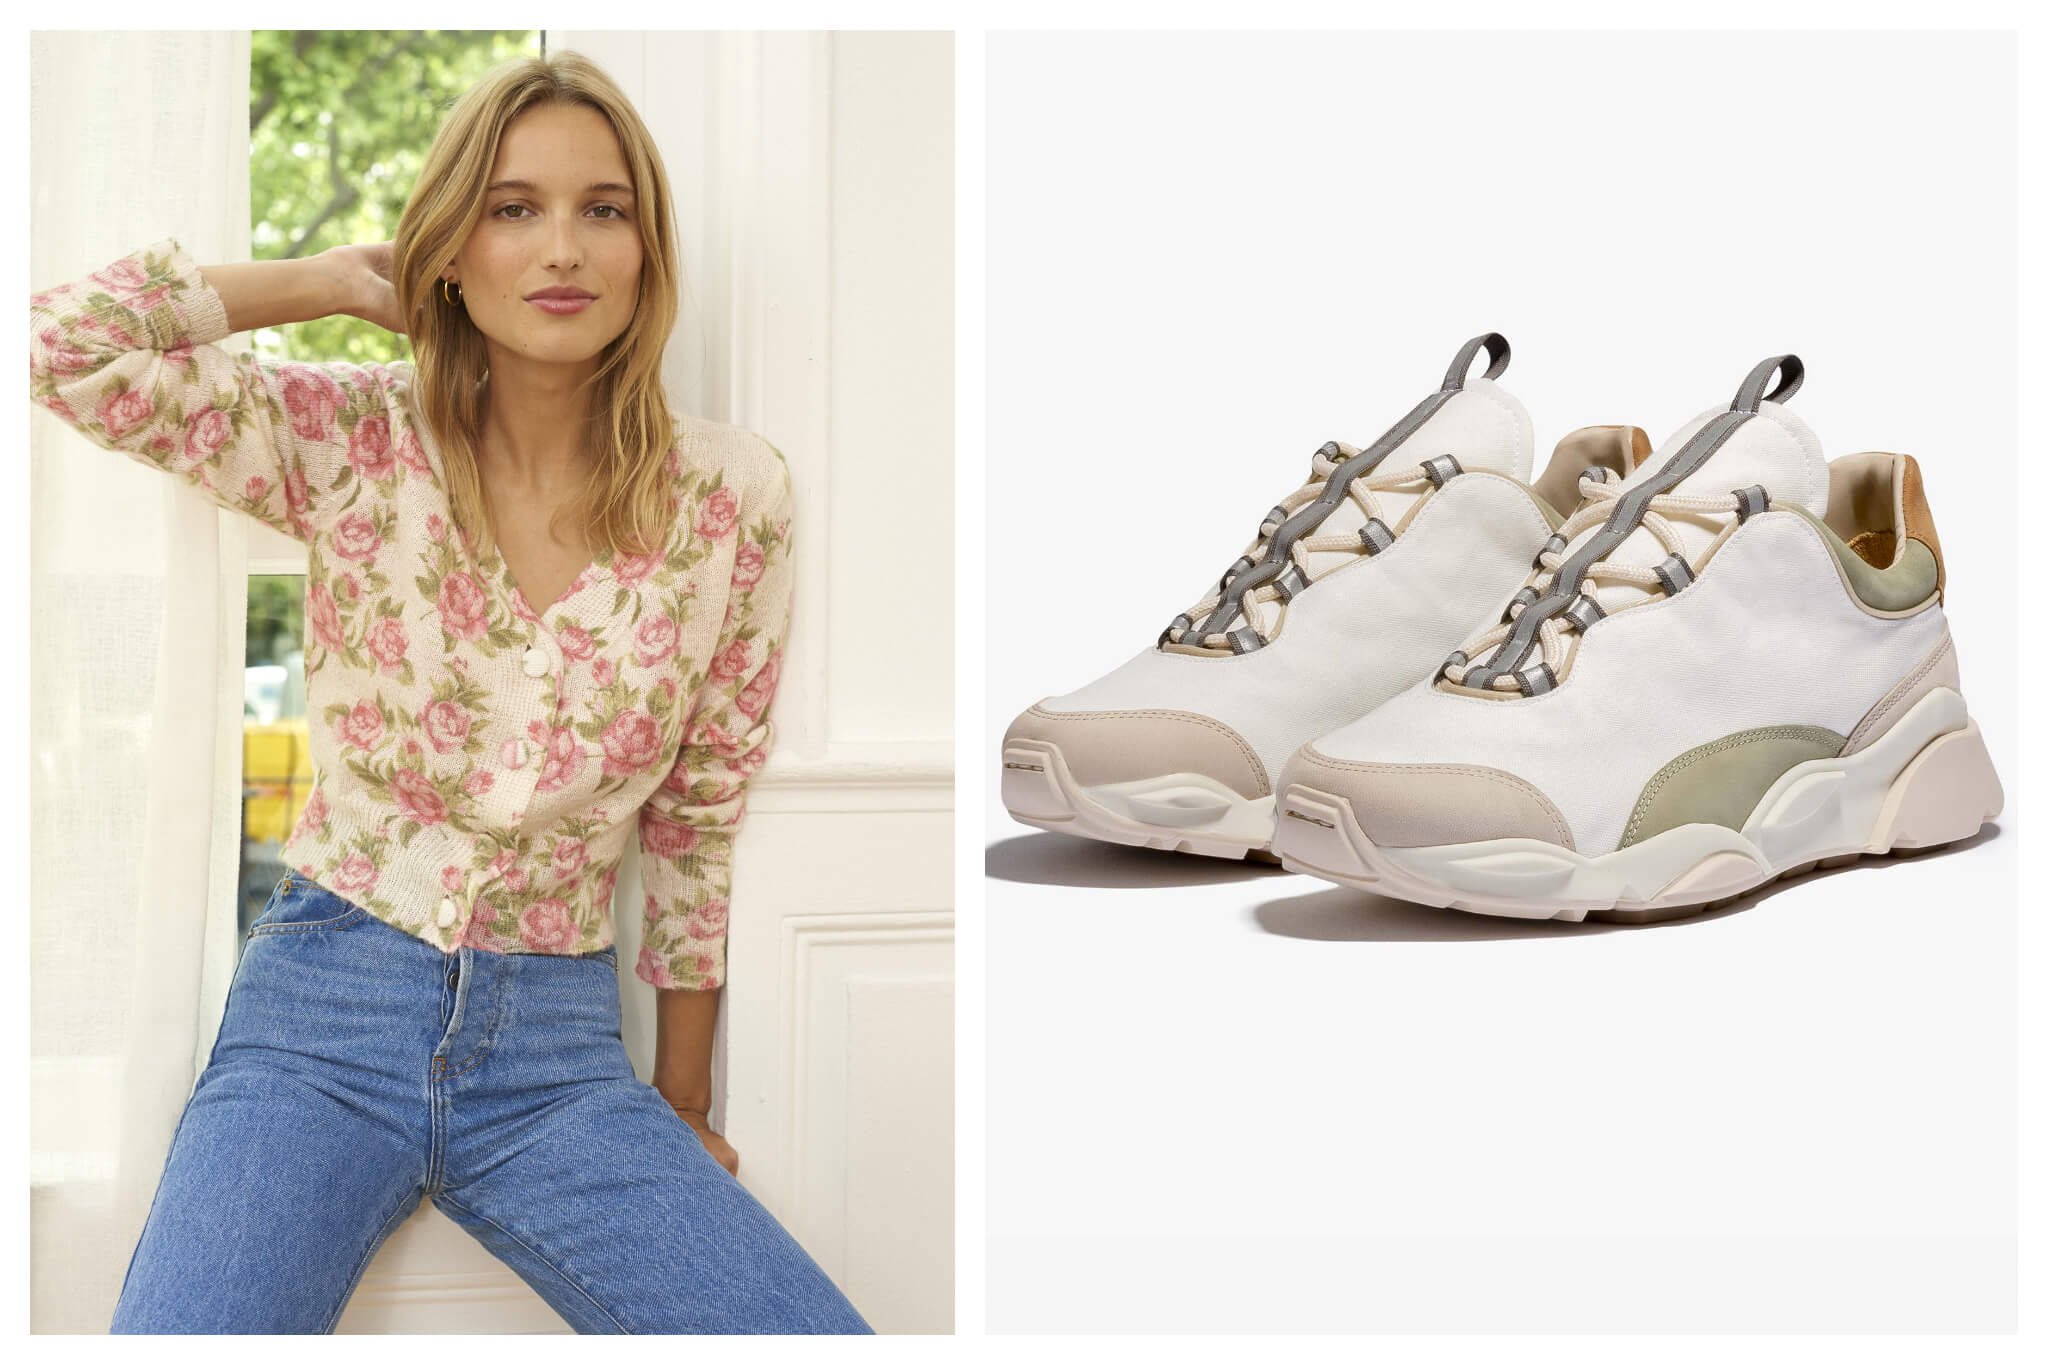 Right: A model with medium length blond hair wear a floral print sweater and blue jeans. Left: A pair of beige sneakers.